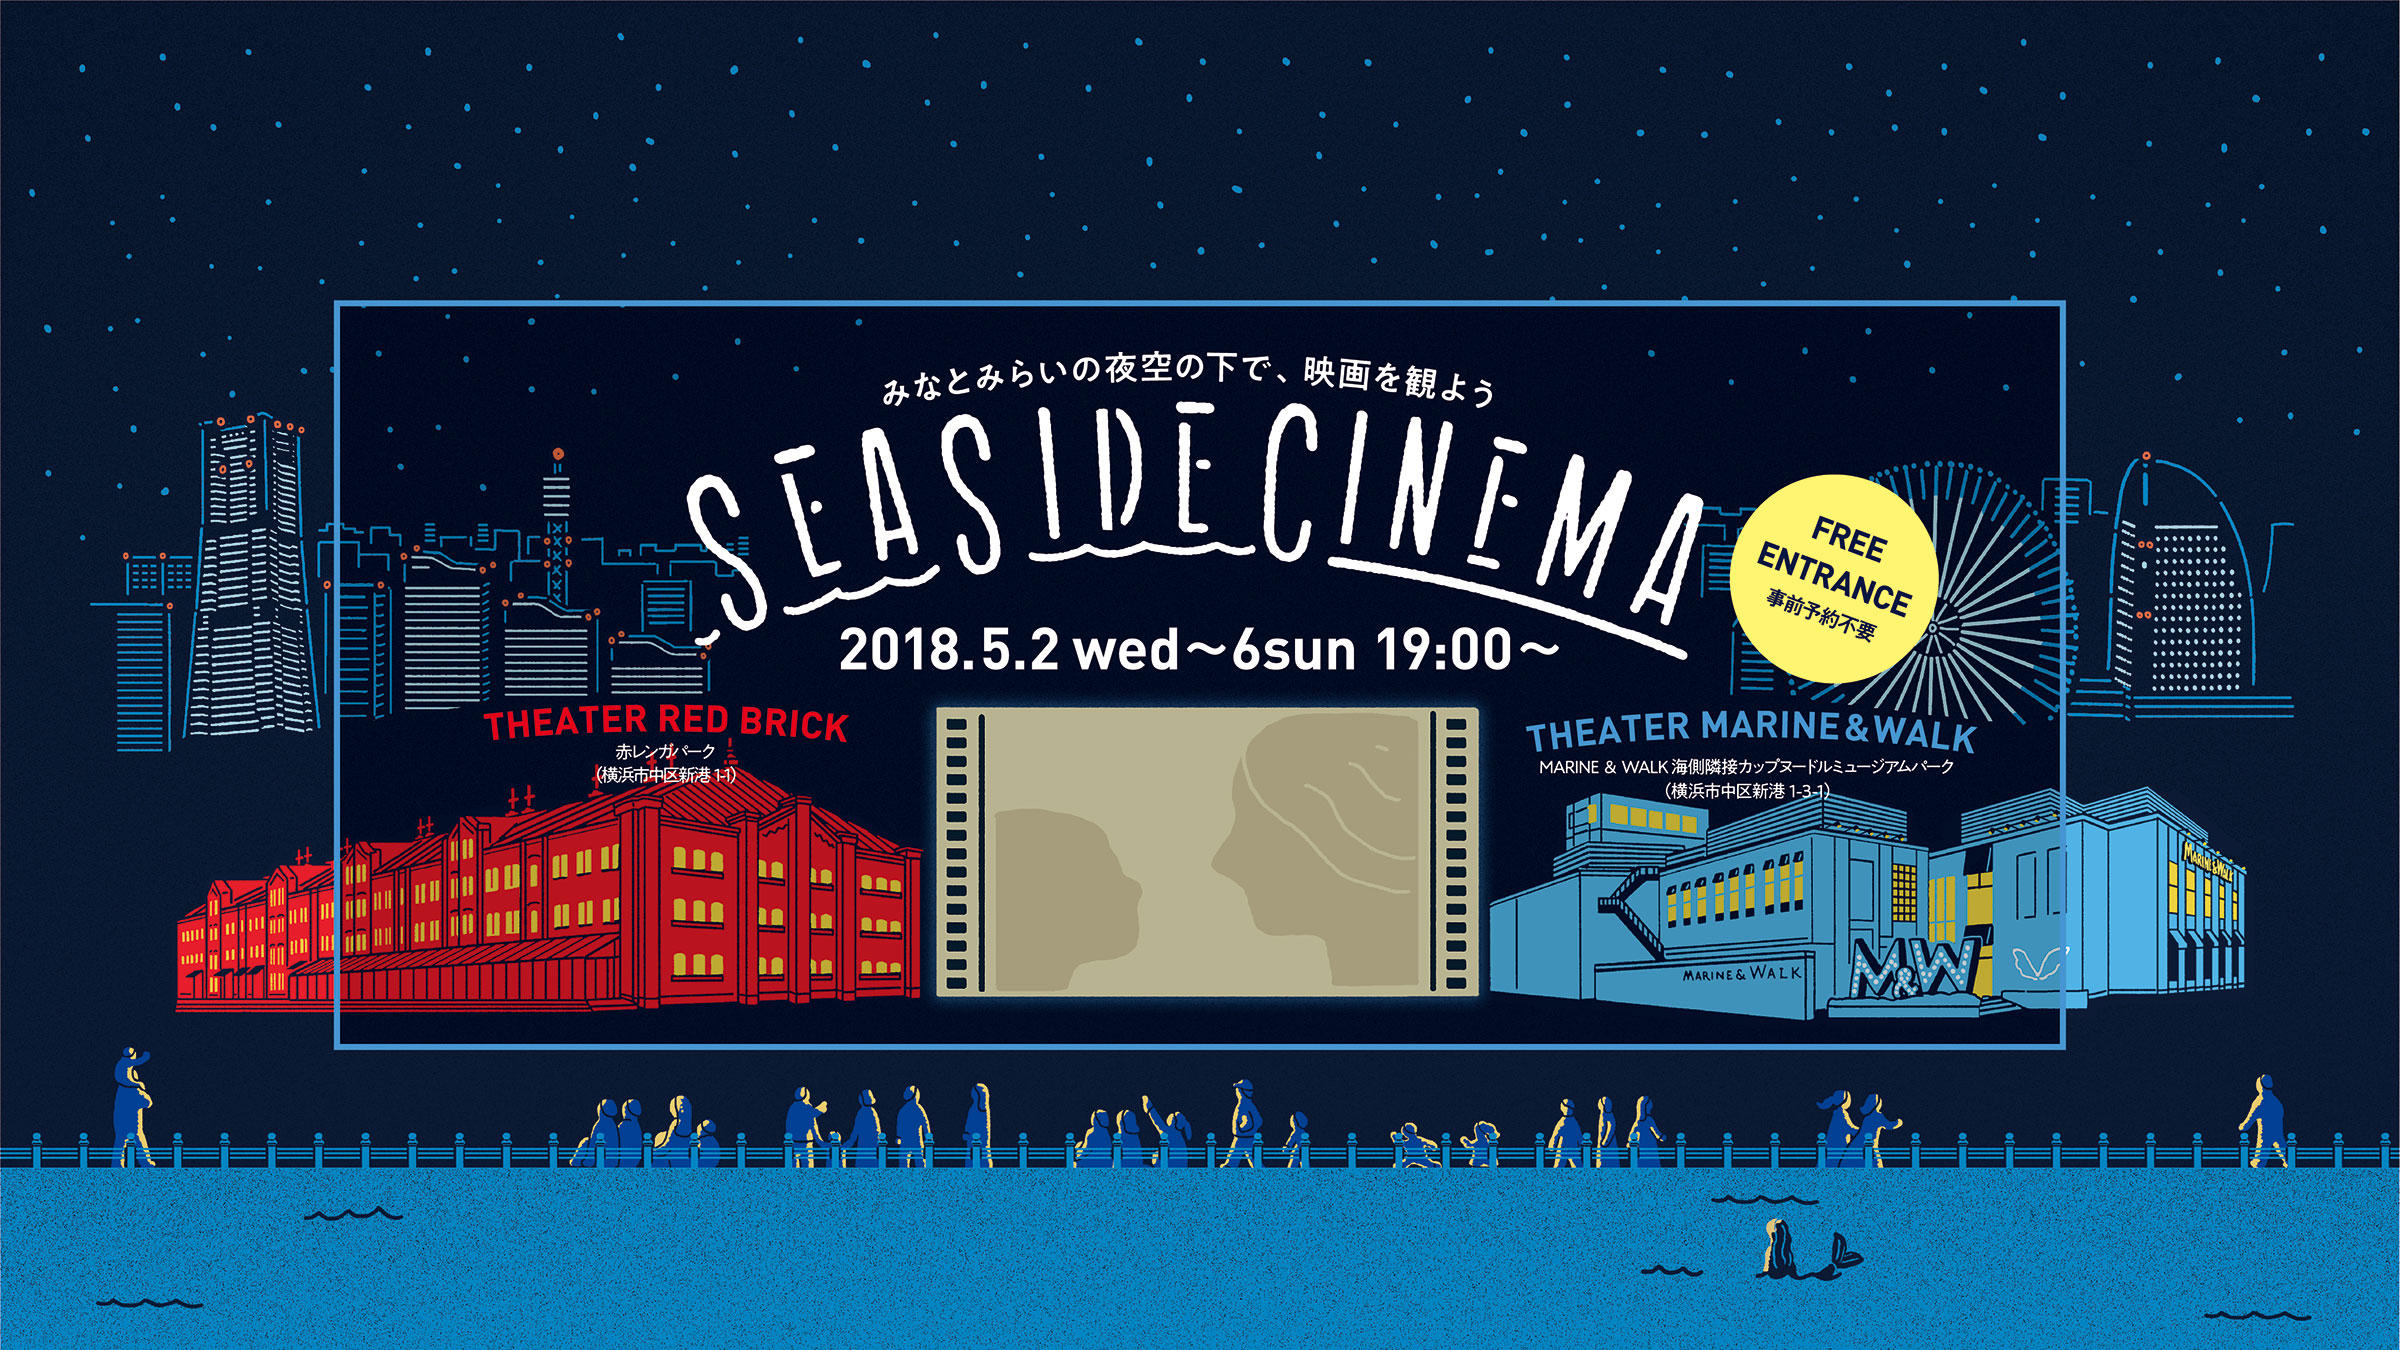 2018.5.2wed-5.6sun 《SEASIDE CINEMA》 開催